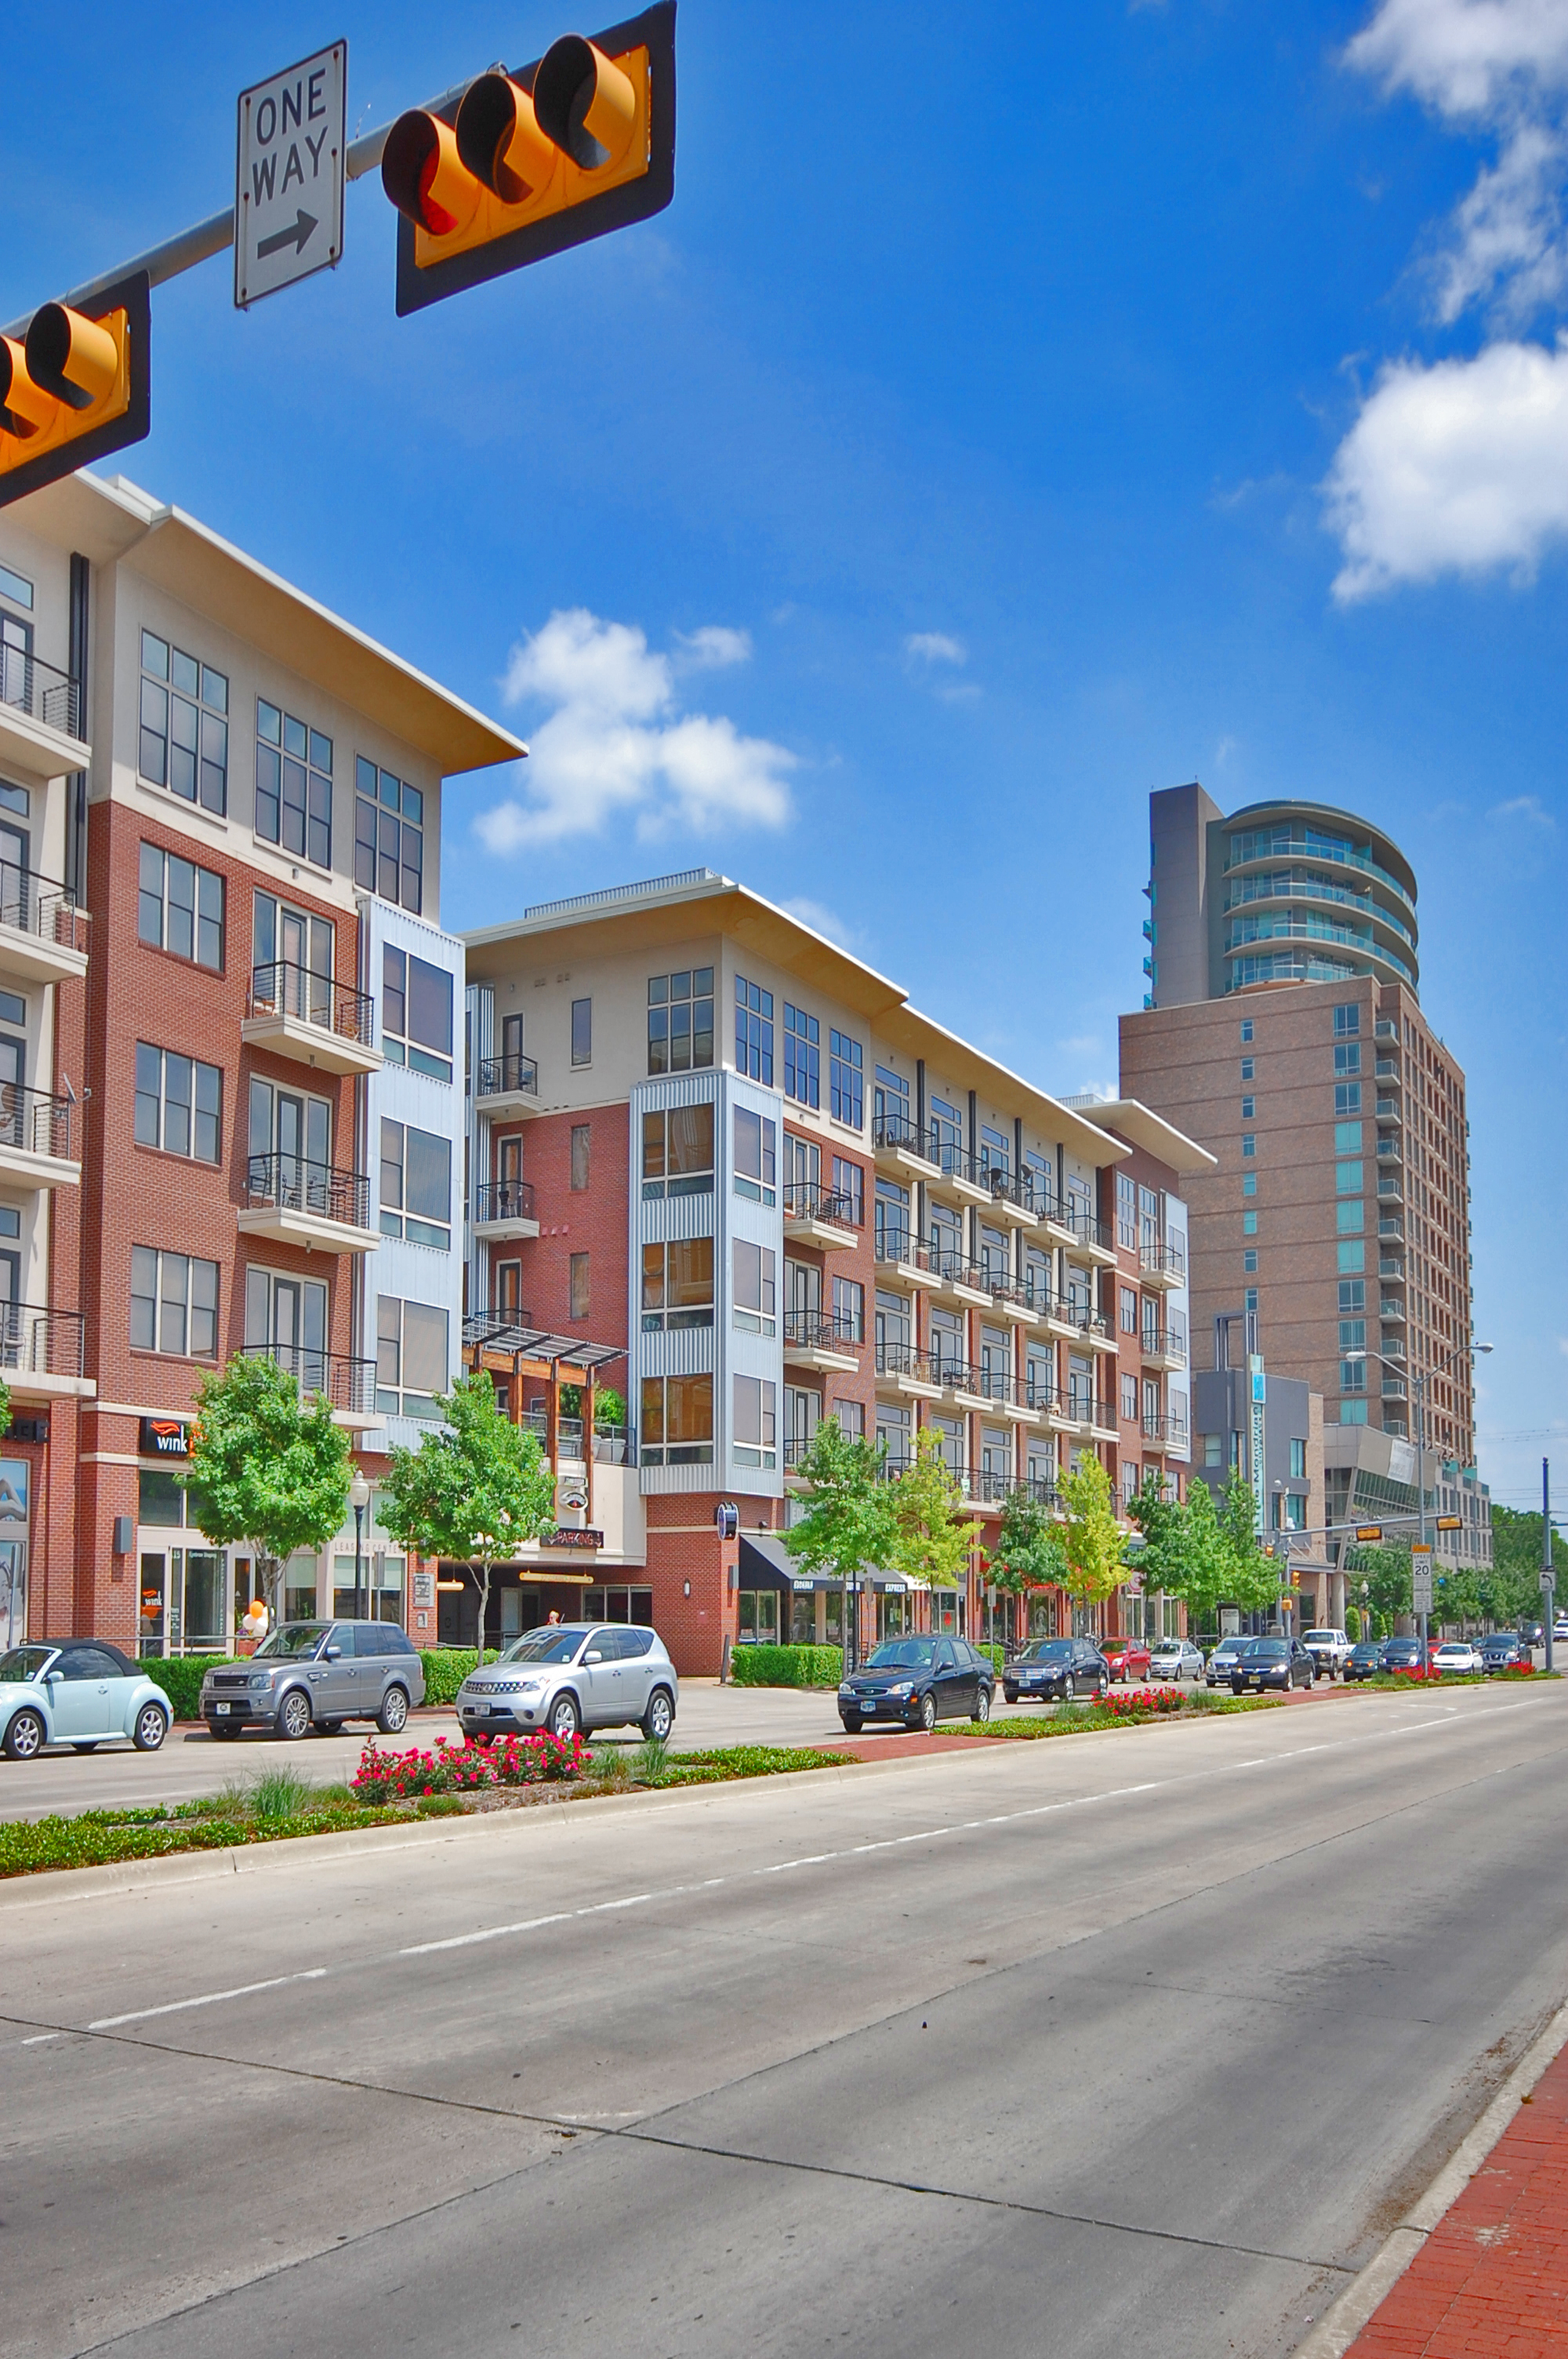 Genial Enjoy The Convenient Location Of These Uptown Dallas High Rise Apartments.